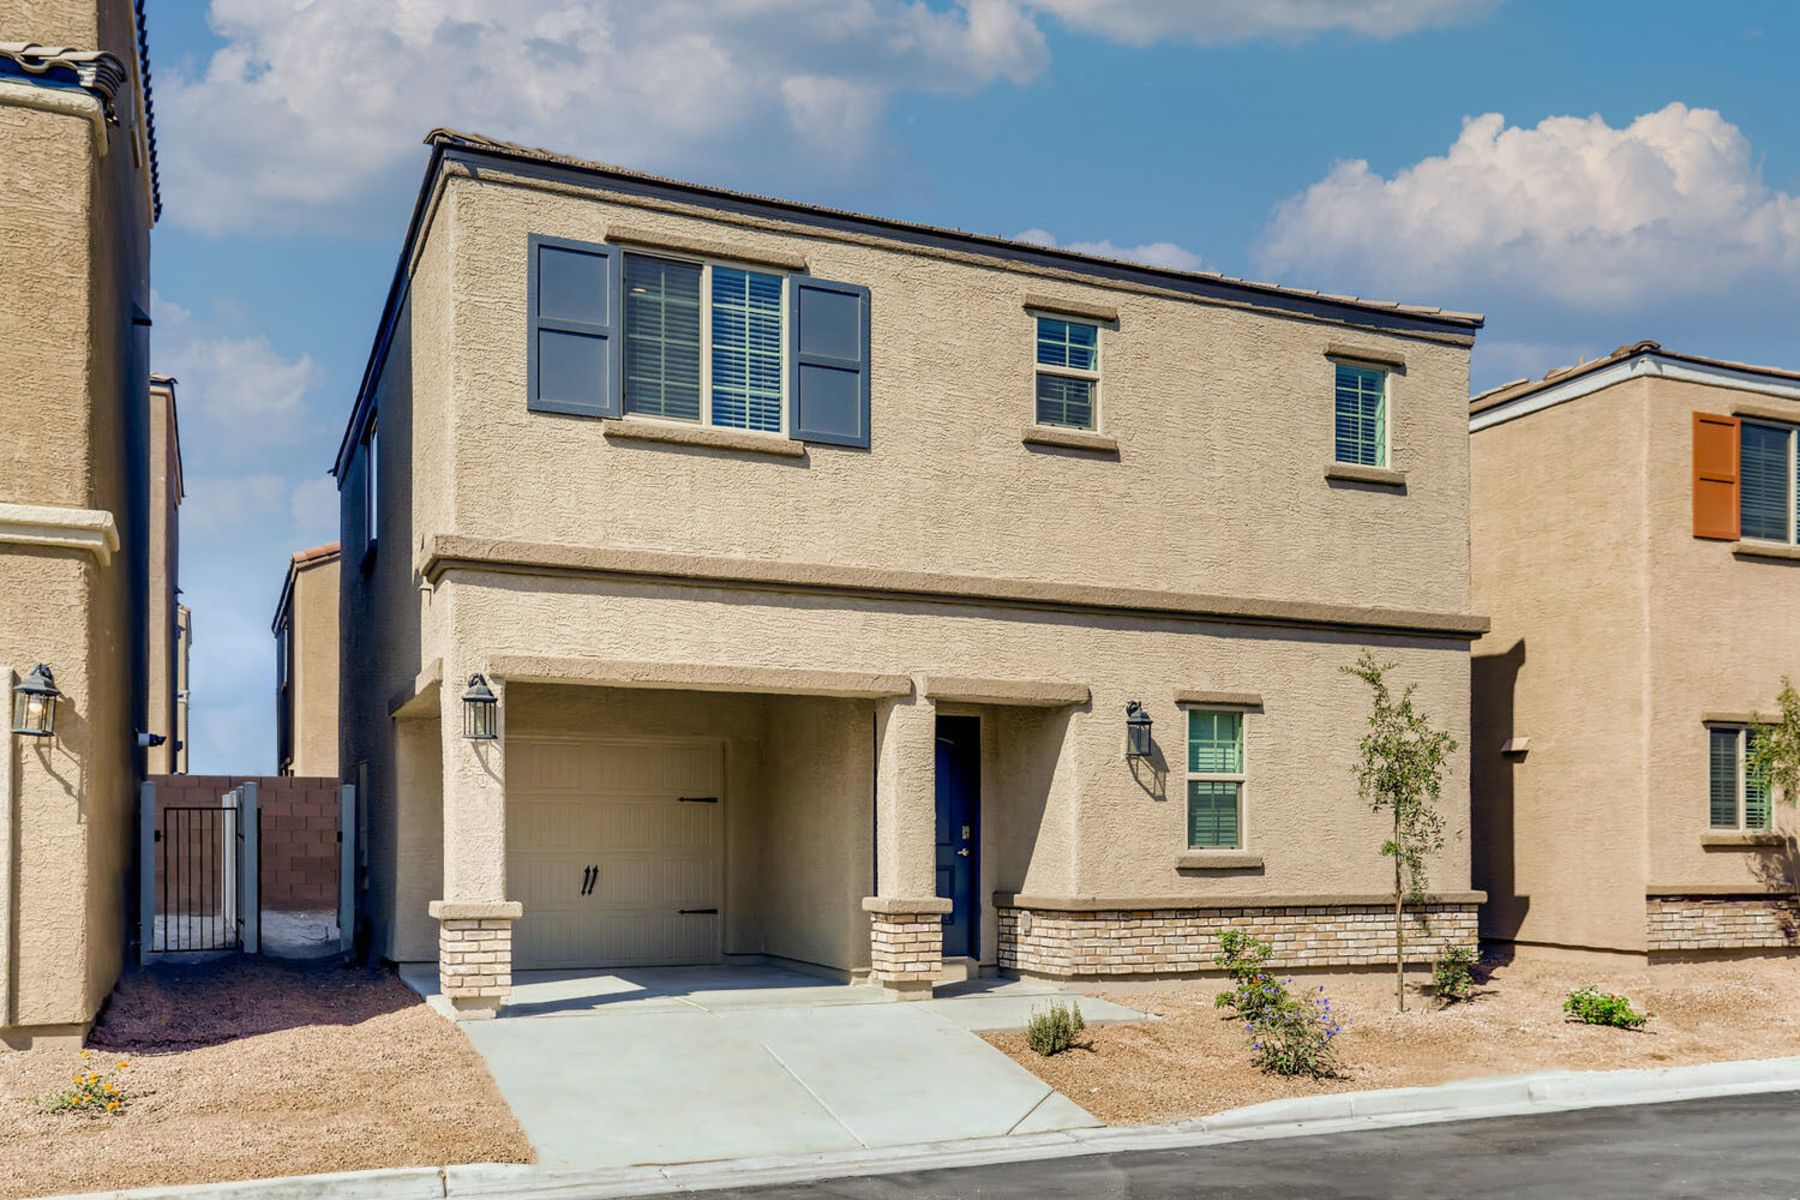 The Boulder by LGI Homes:Two-story home with incredible curb appeal!